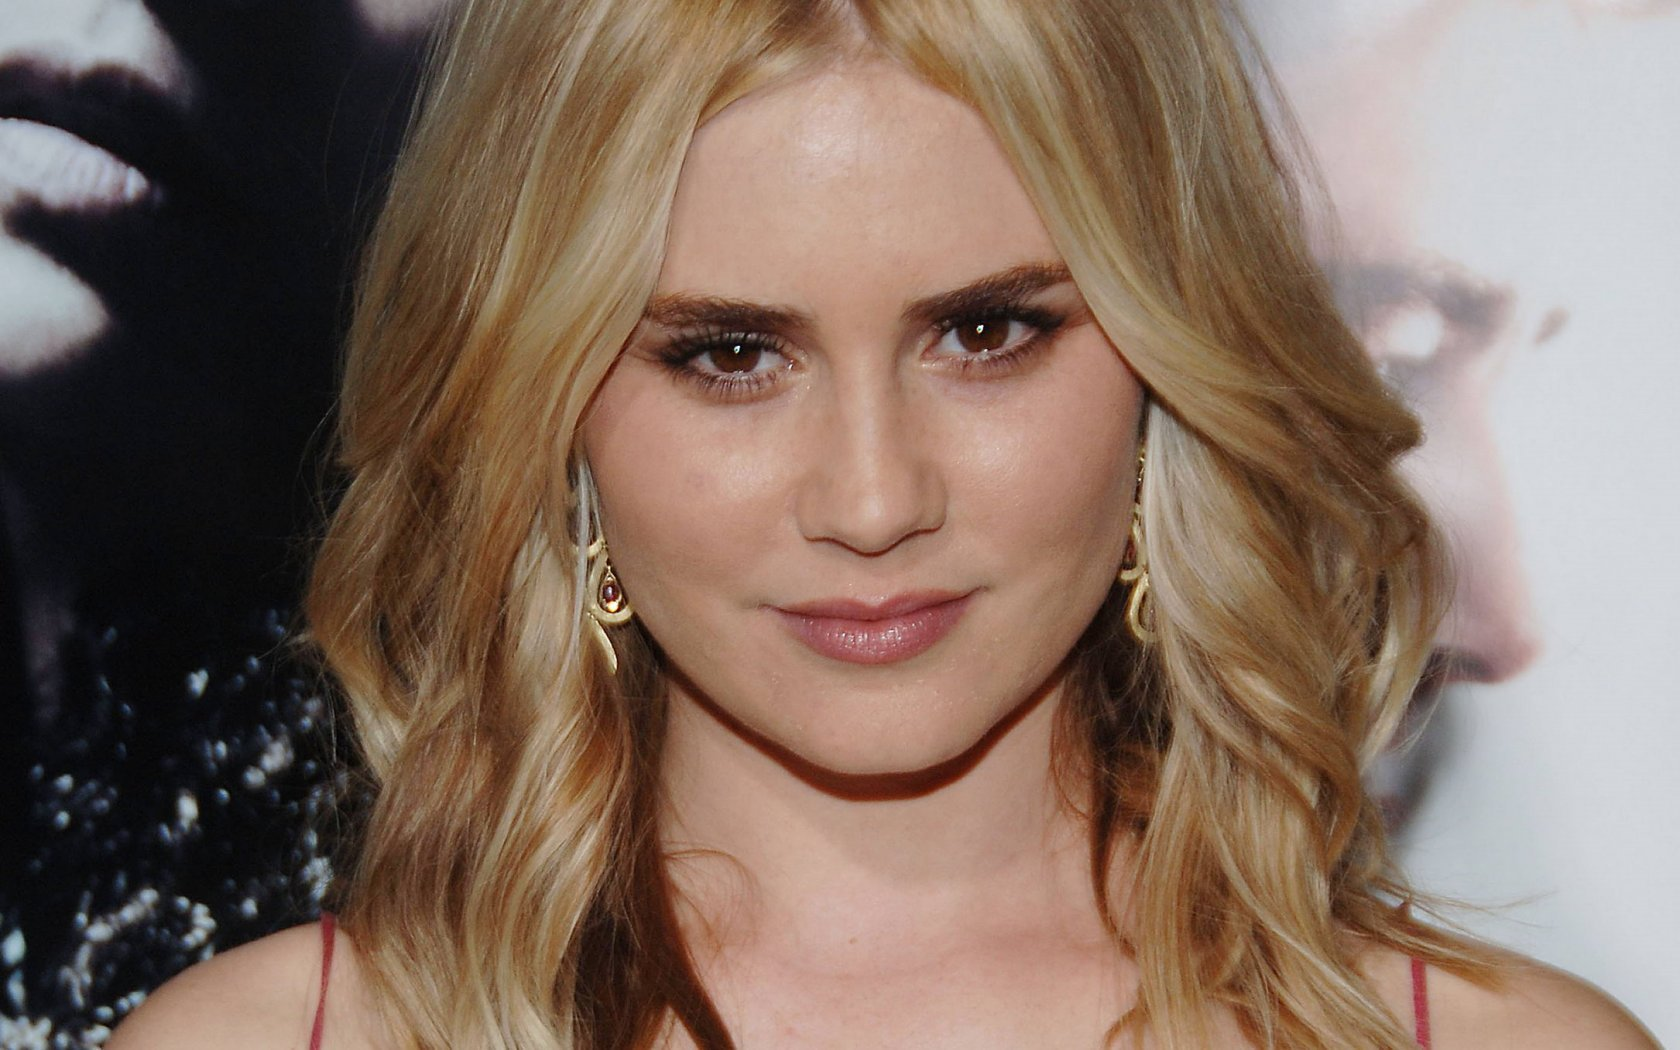 alison lohman celebrity wallpaper photos 58370